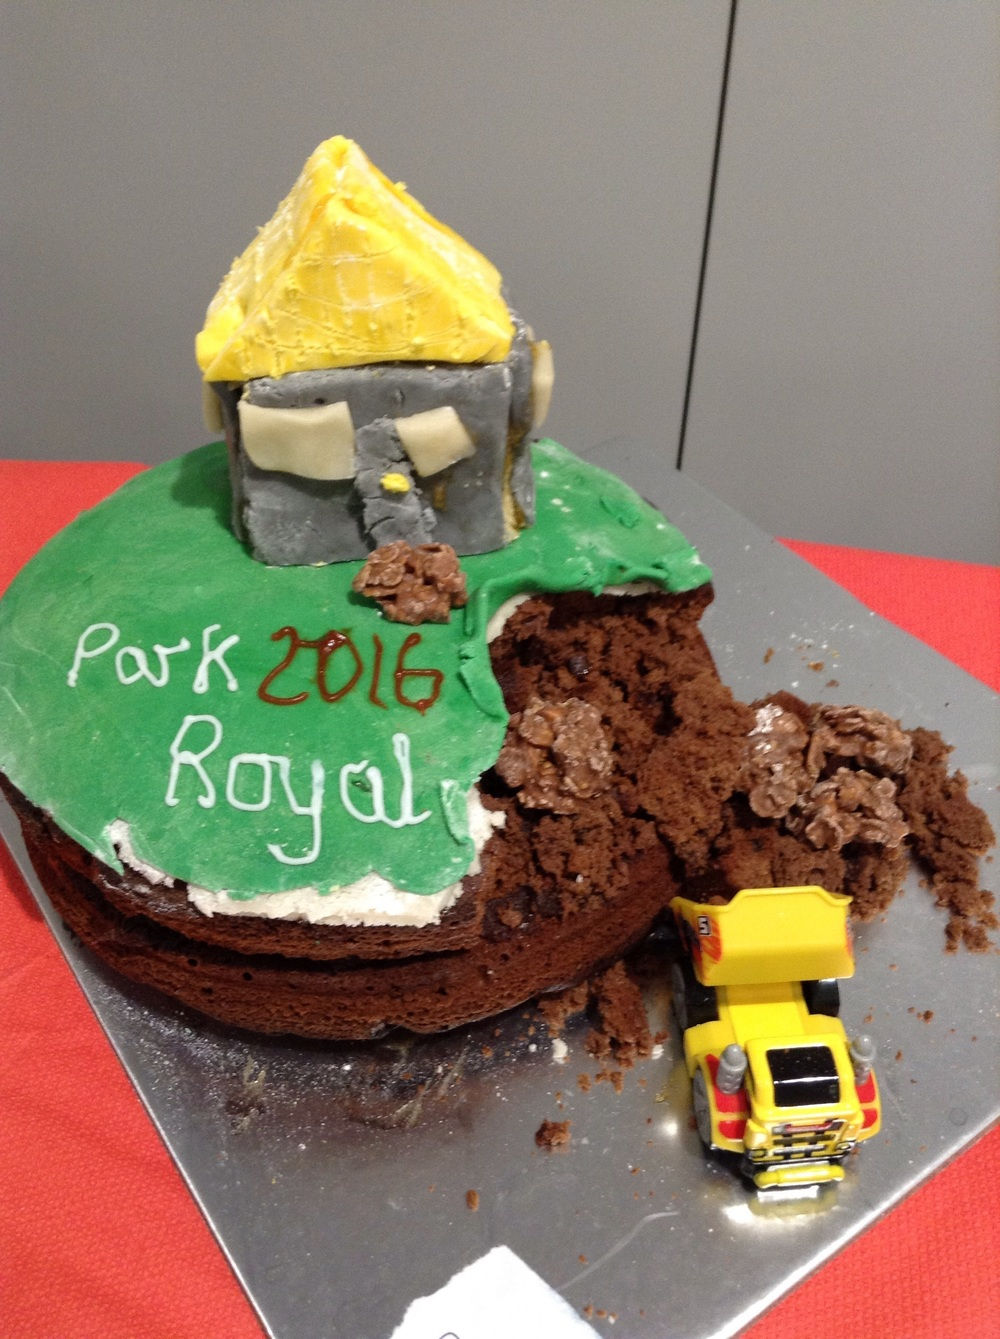 Rosalynn from 3CHP wowed our judges with her construction site inspired cake! It was chocolate heaven.